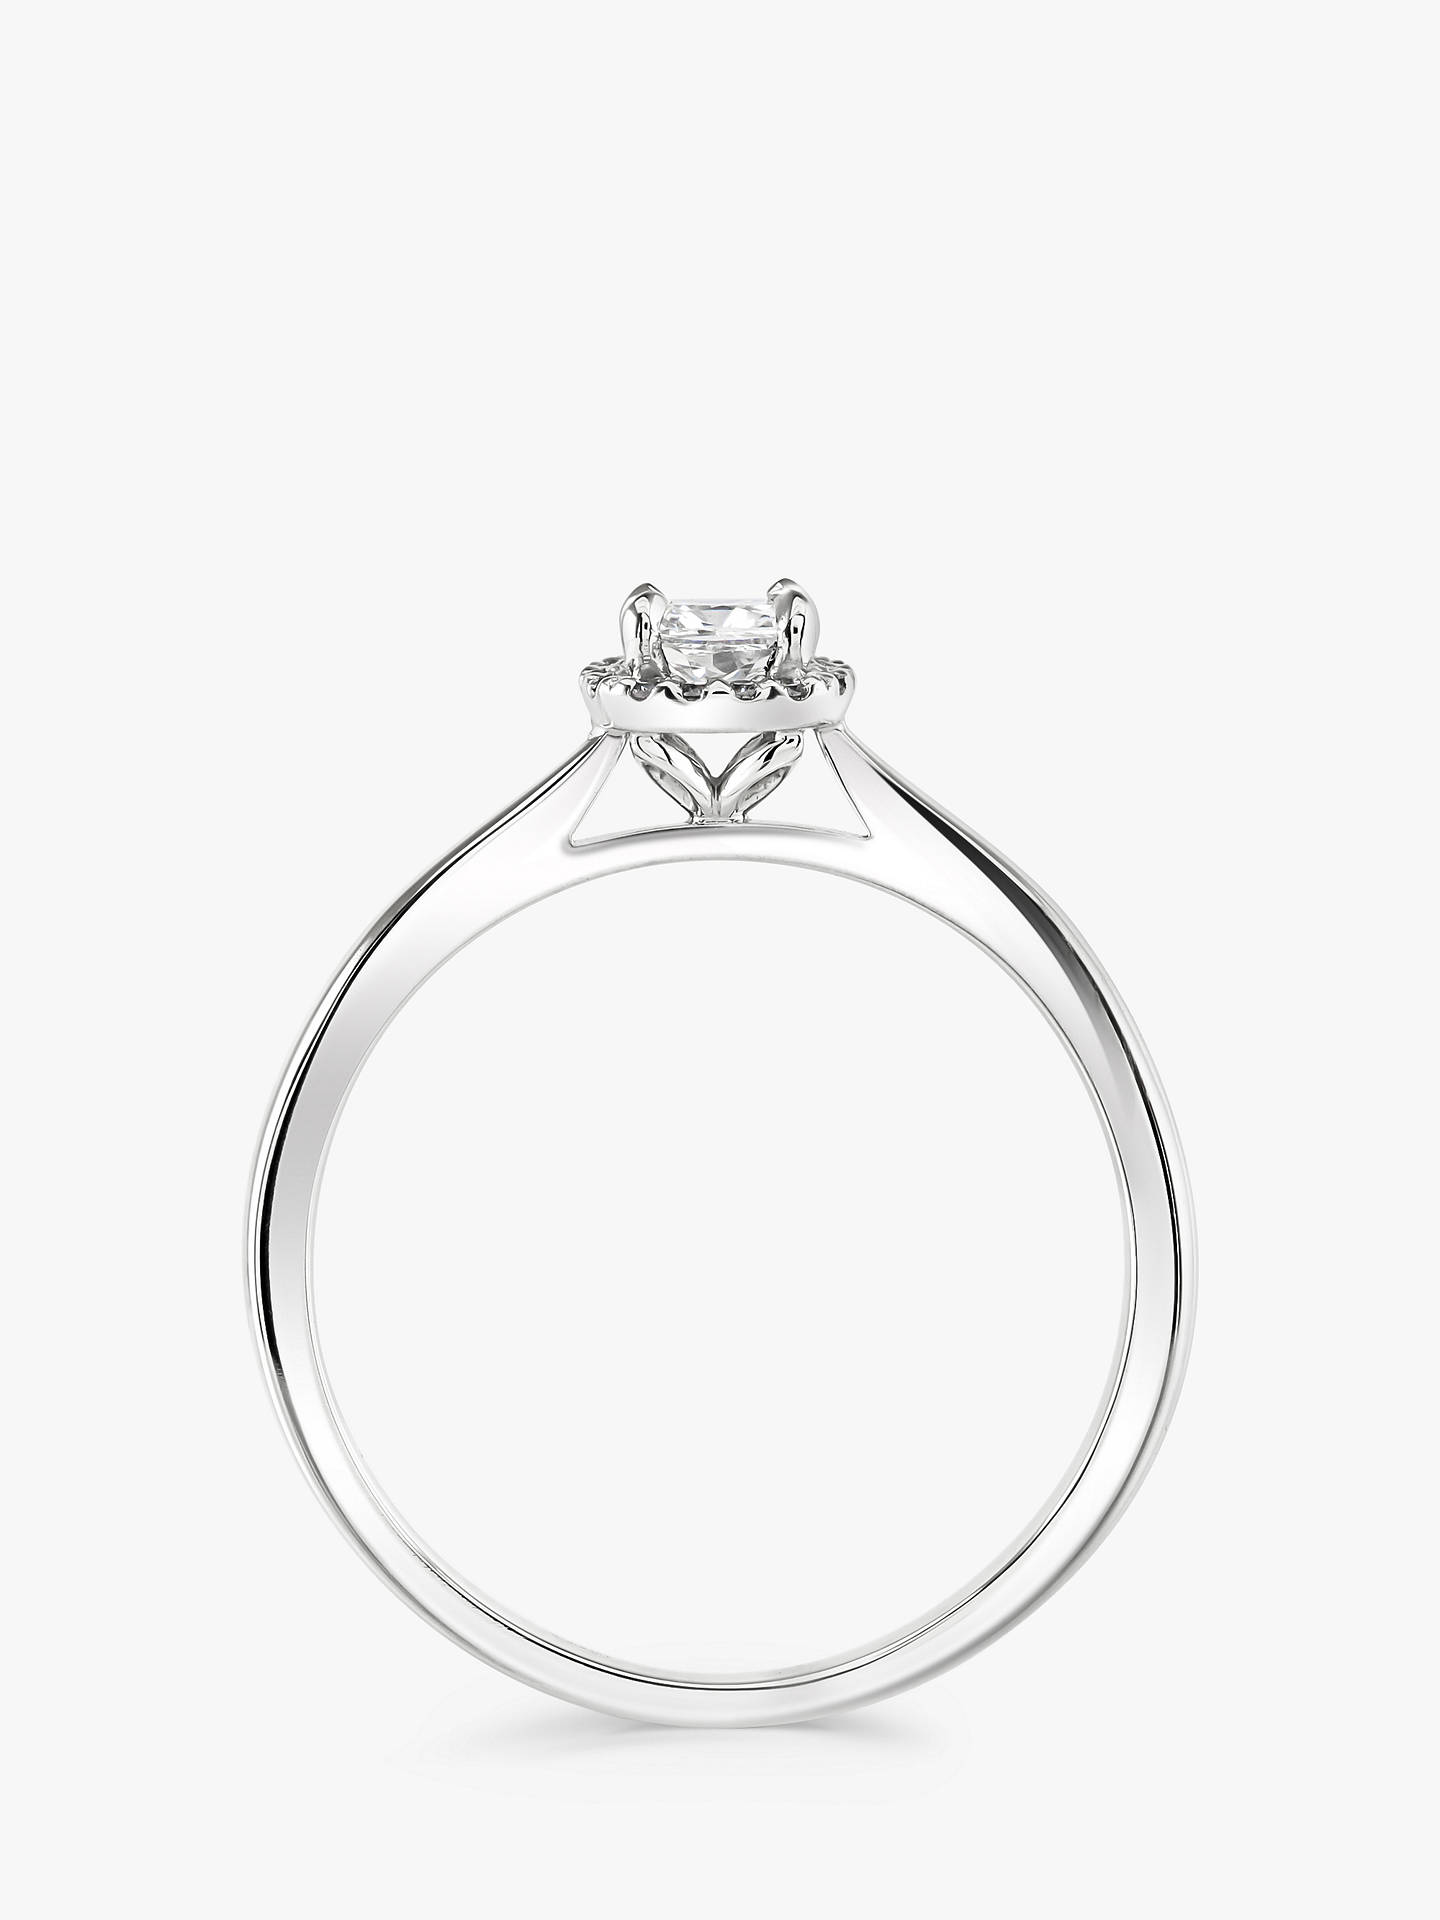 BuyBrown & Newirth Platinum Cushion Cut Diamond Engagement Ring, 0.28ct Online at johnlewis.com